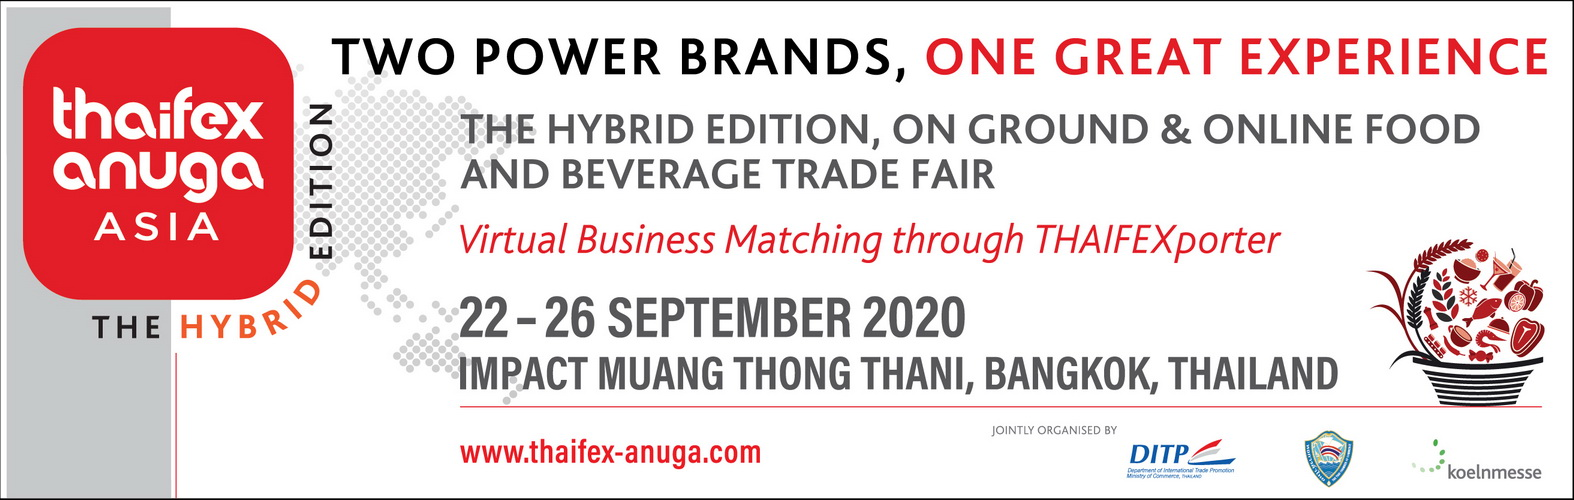 THAIFEX - ANUGA ASIA 2020 The Hybrid Edition: Expands Opportunities for Thai Business Operators to Meet Global Trade Partners through THAIFEXporter Virtual Trade Show